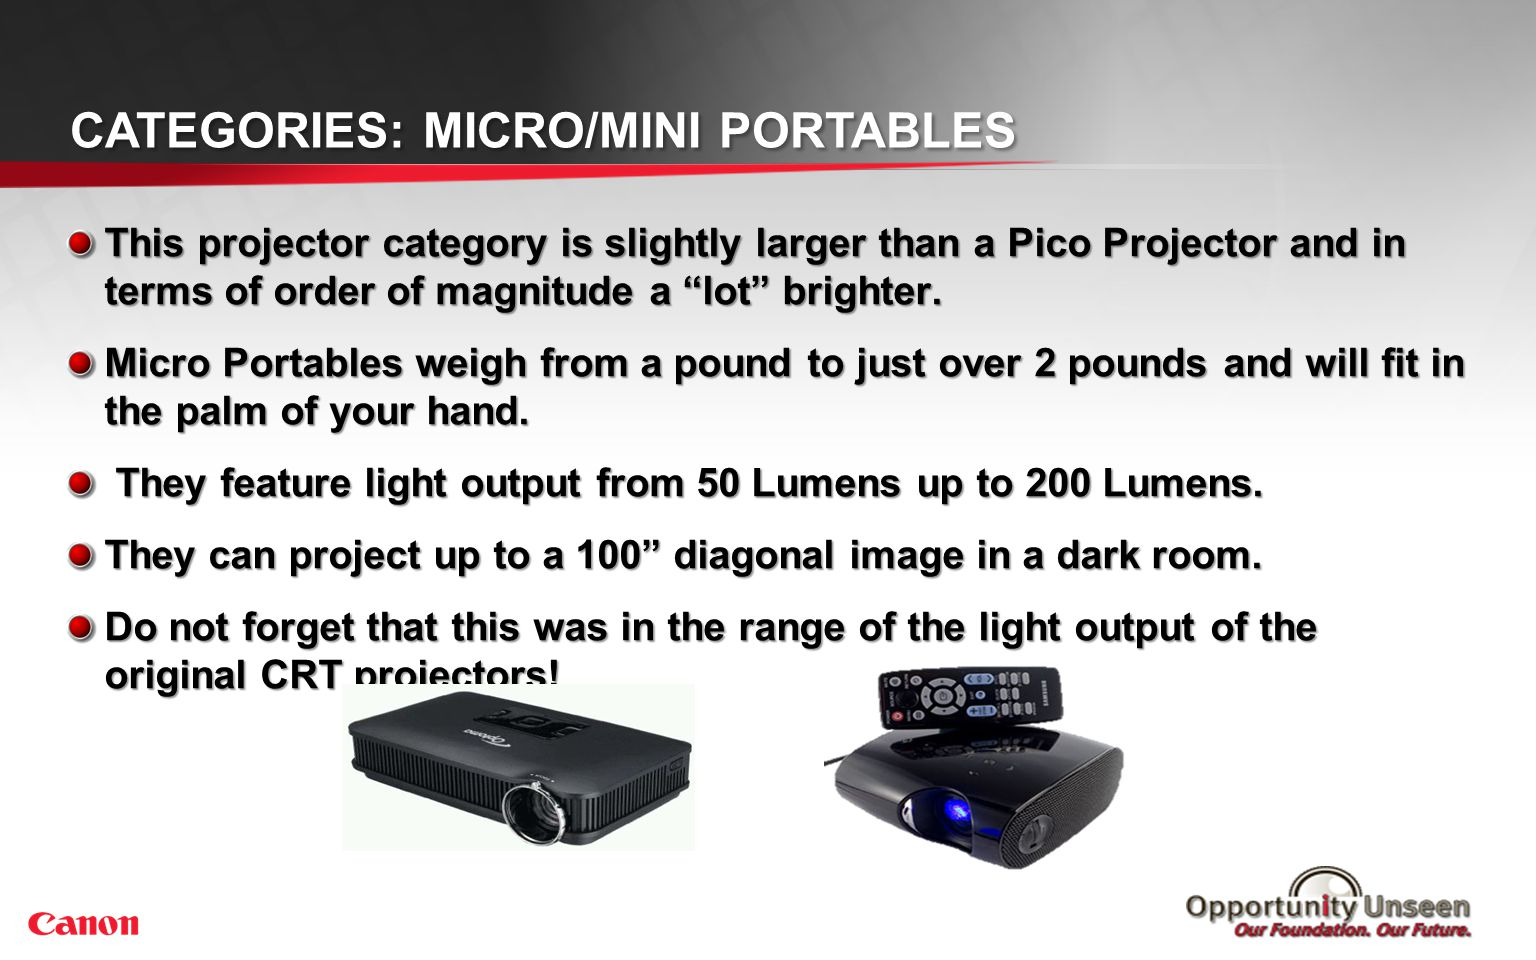 Categories: Ultra Portable Projectors